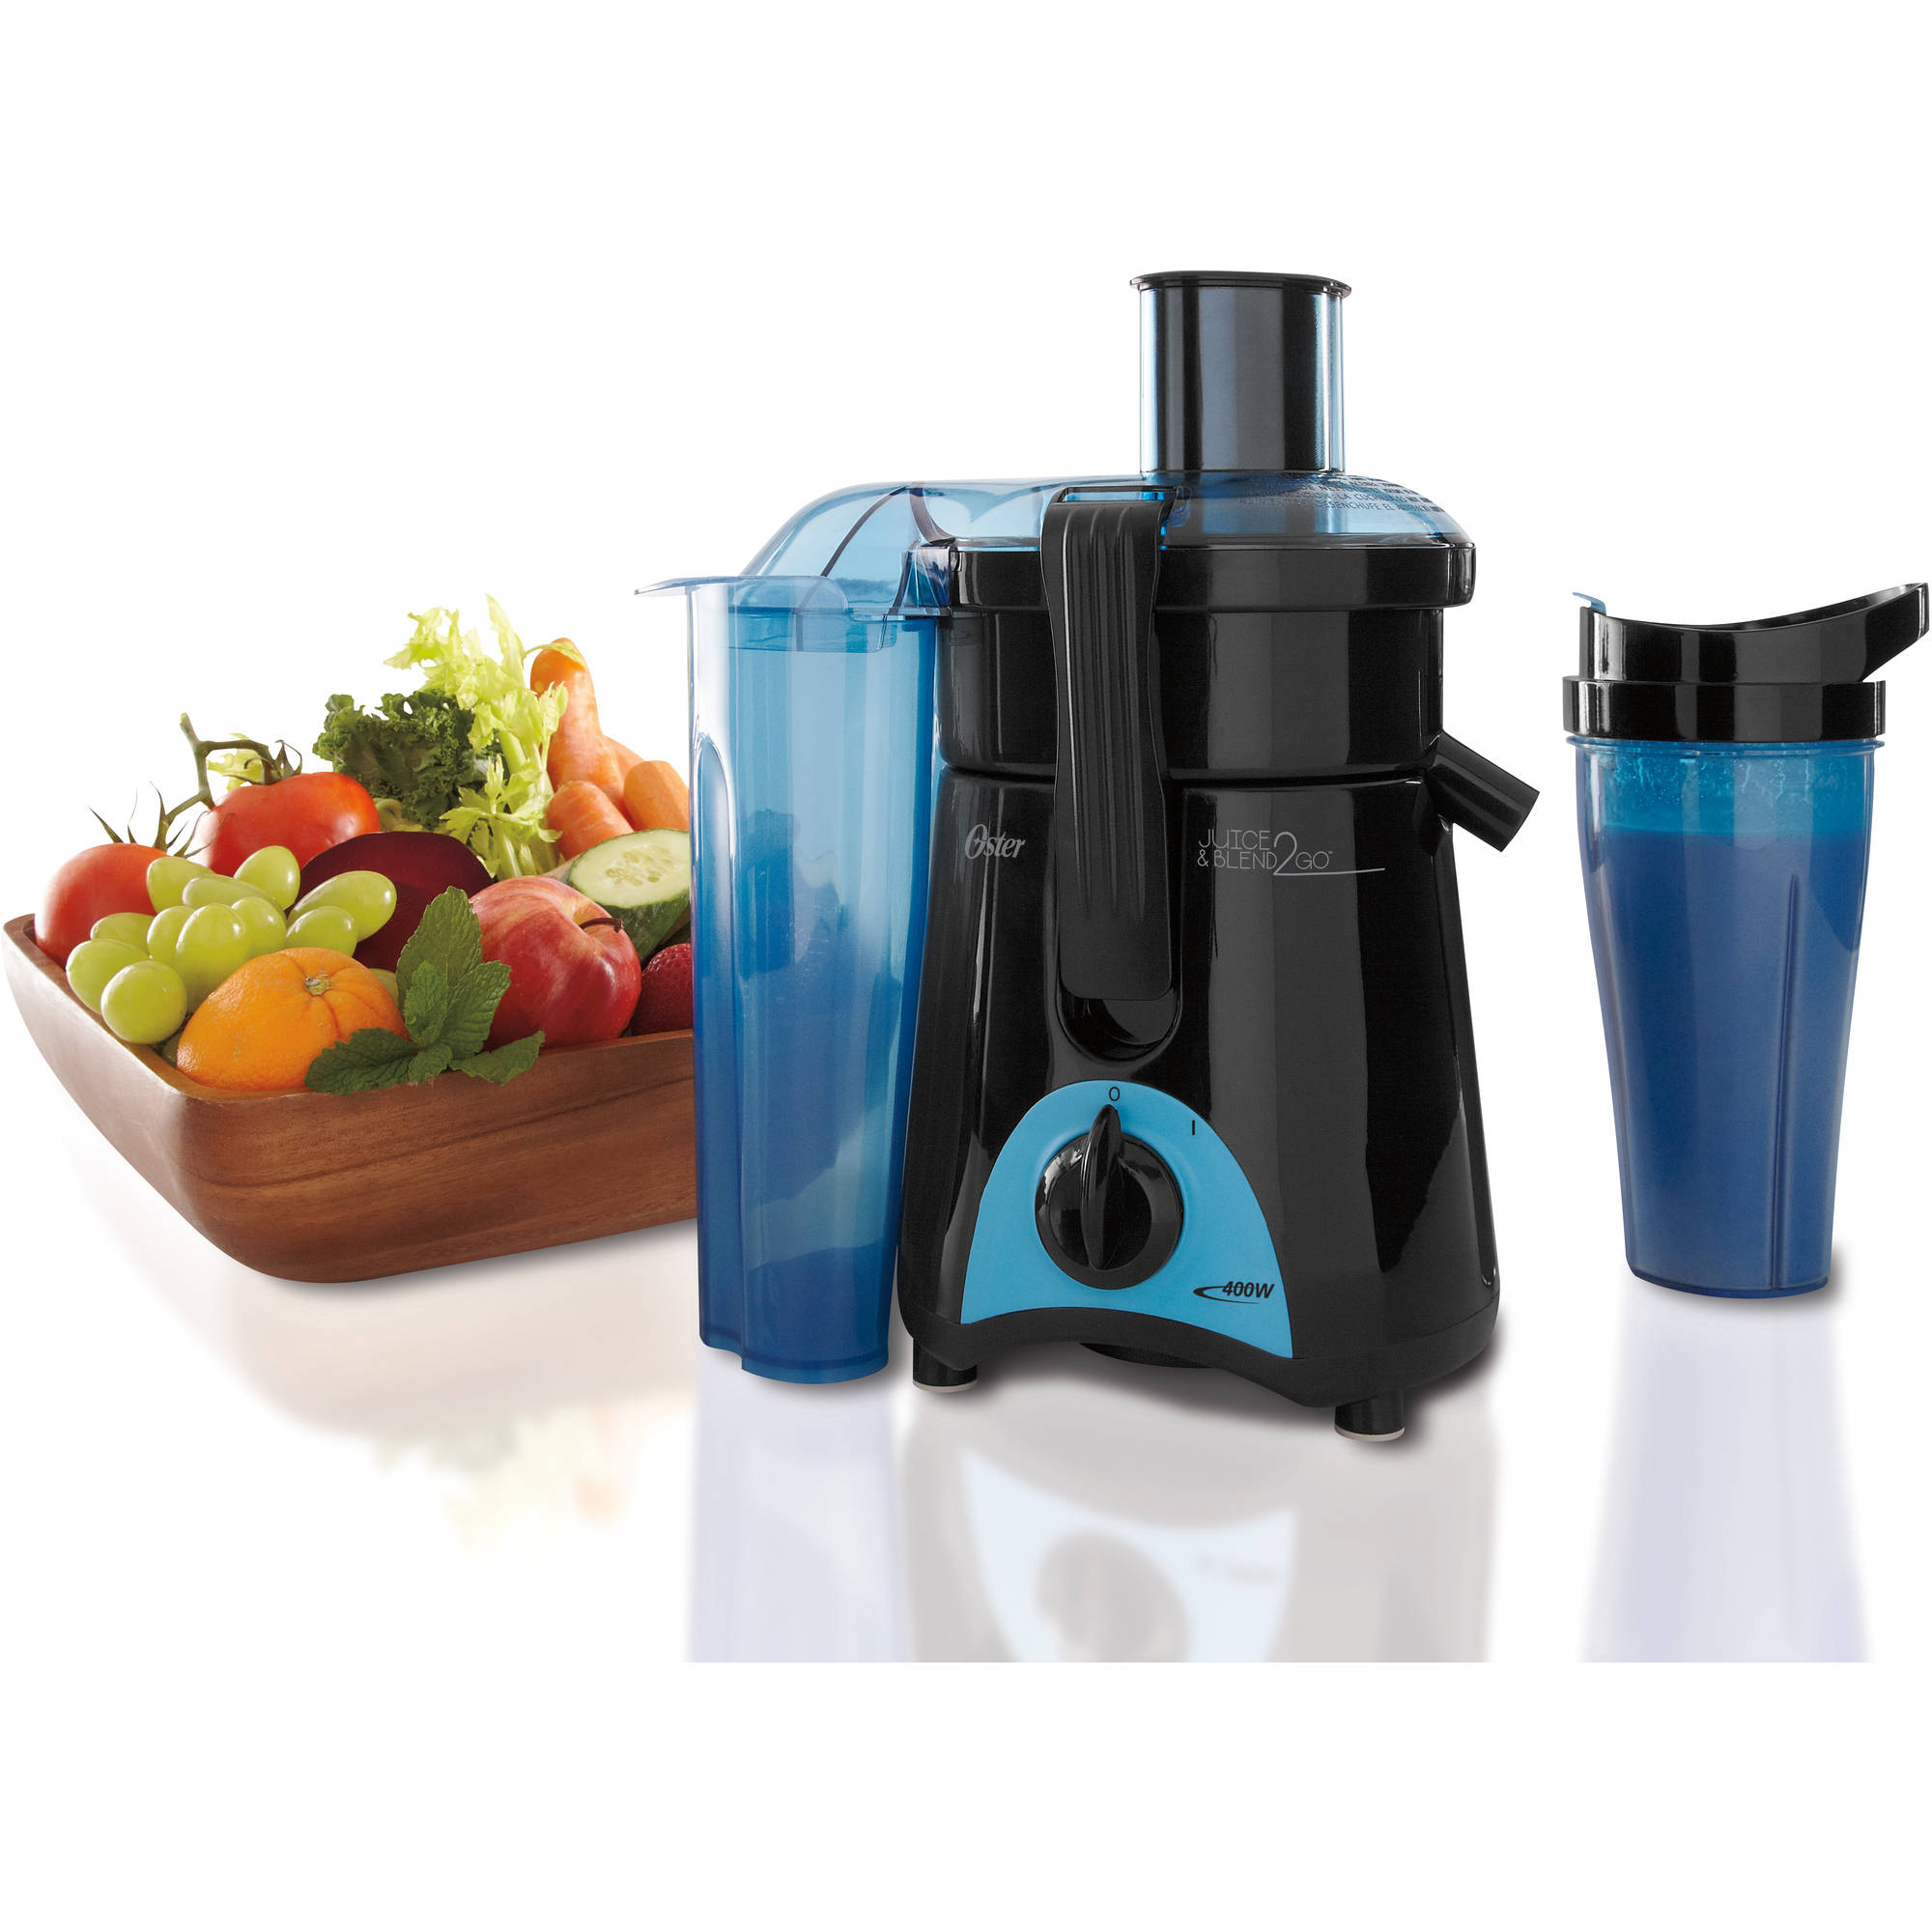 Oster Juice and Blend 2 Go Compact Juice Extractor and Personal Blender, FPSTJE3166-022